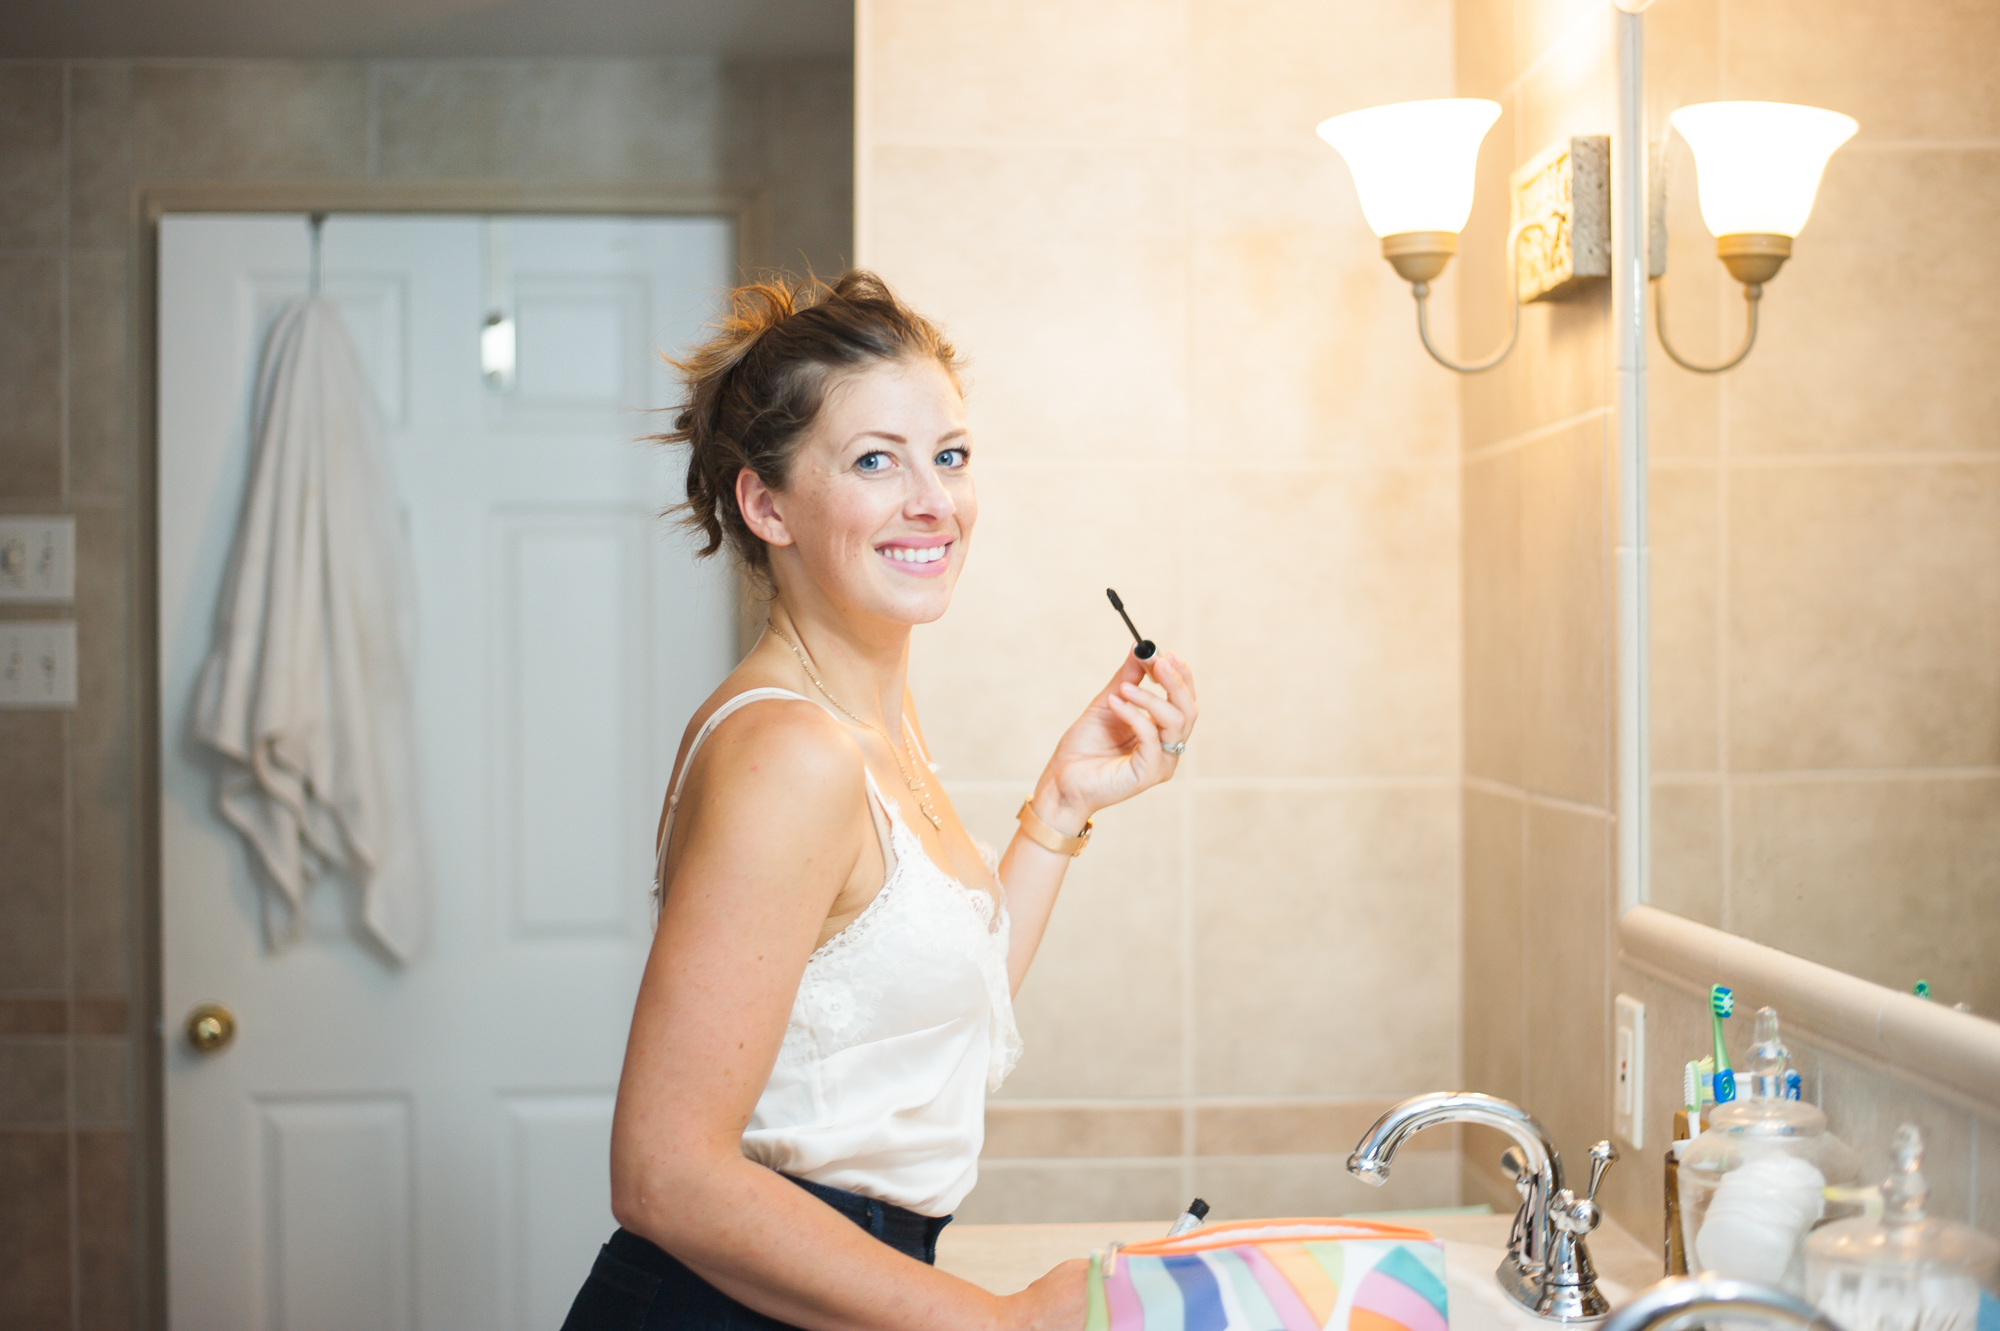 Wild Rosebuds: 4 beauty Hacks to help a mom look more put together, even without makeup